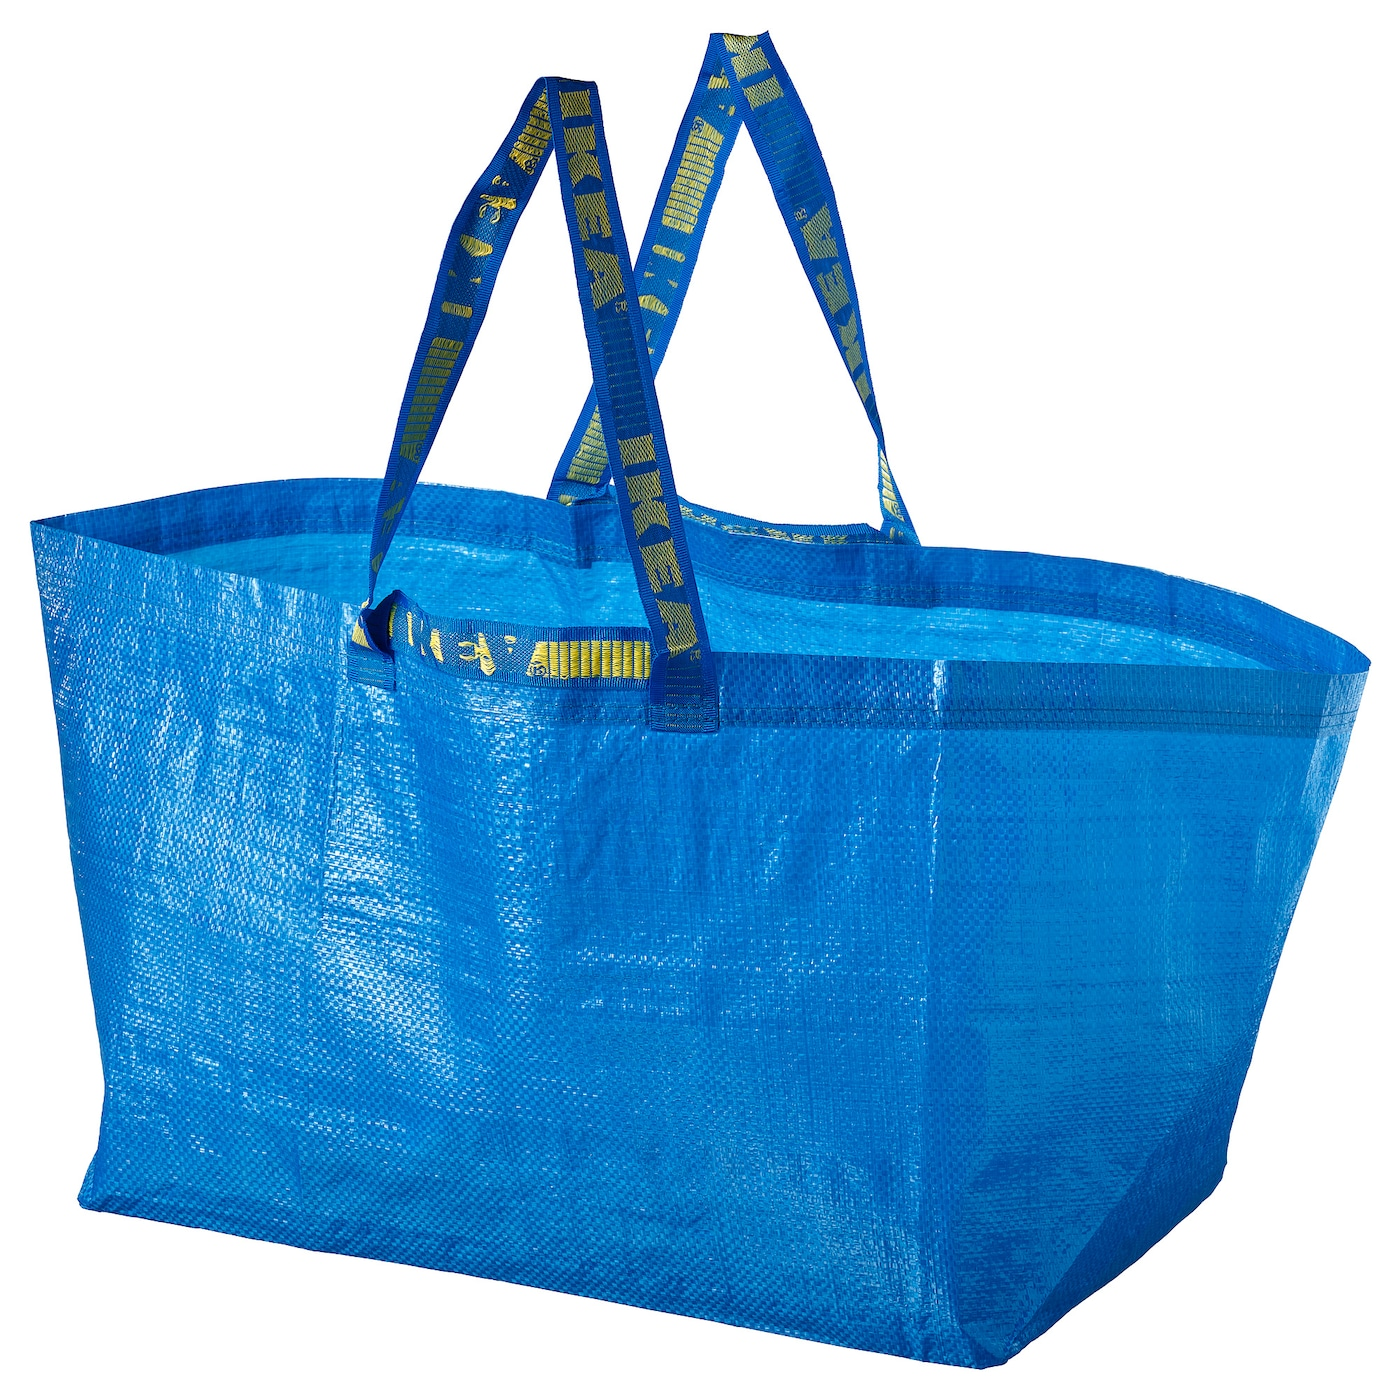 Frakta Shopping Bag Large Blue 19 Gallon Ikea